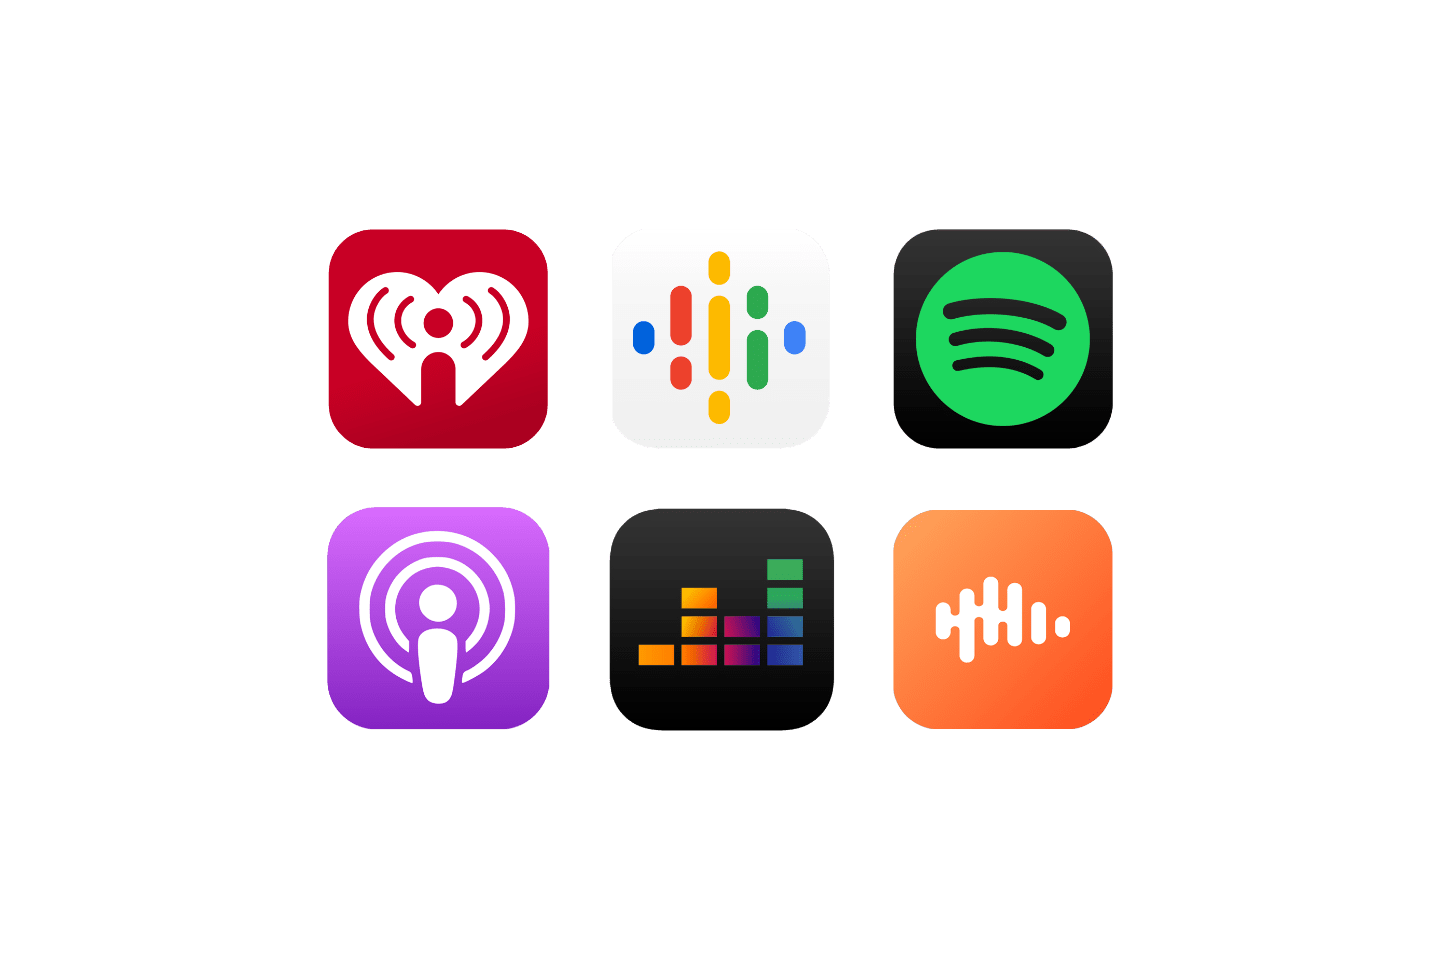 A series of logos showcasing some of the top podcast listening platforms including, iHeart Podcast Network, Apple Podcasts, Spotify, Google Podcasts, and more which Spreaker can distribute your podcast to in one click.